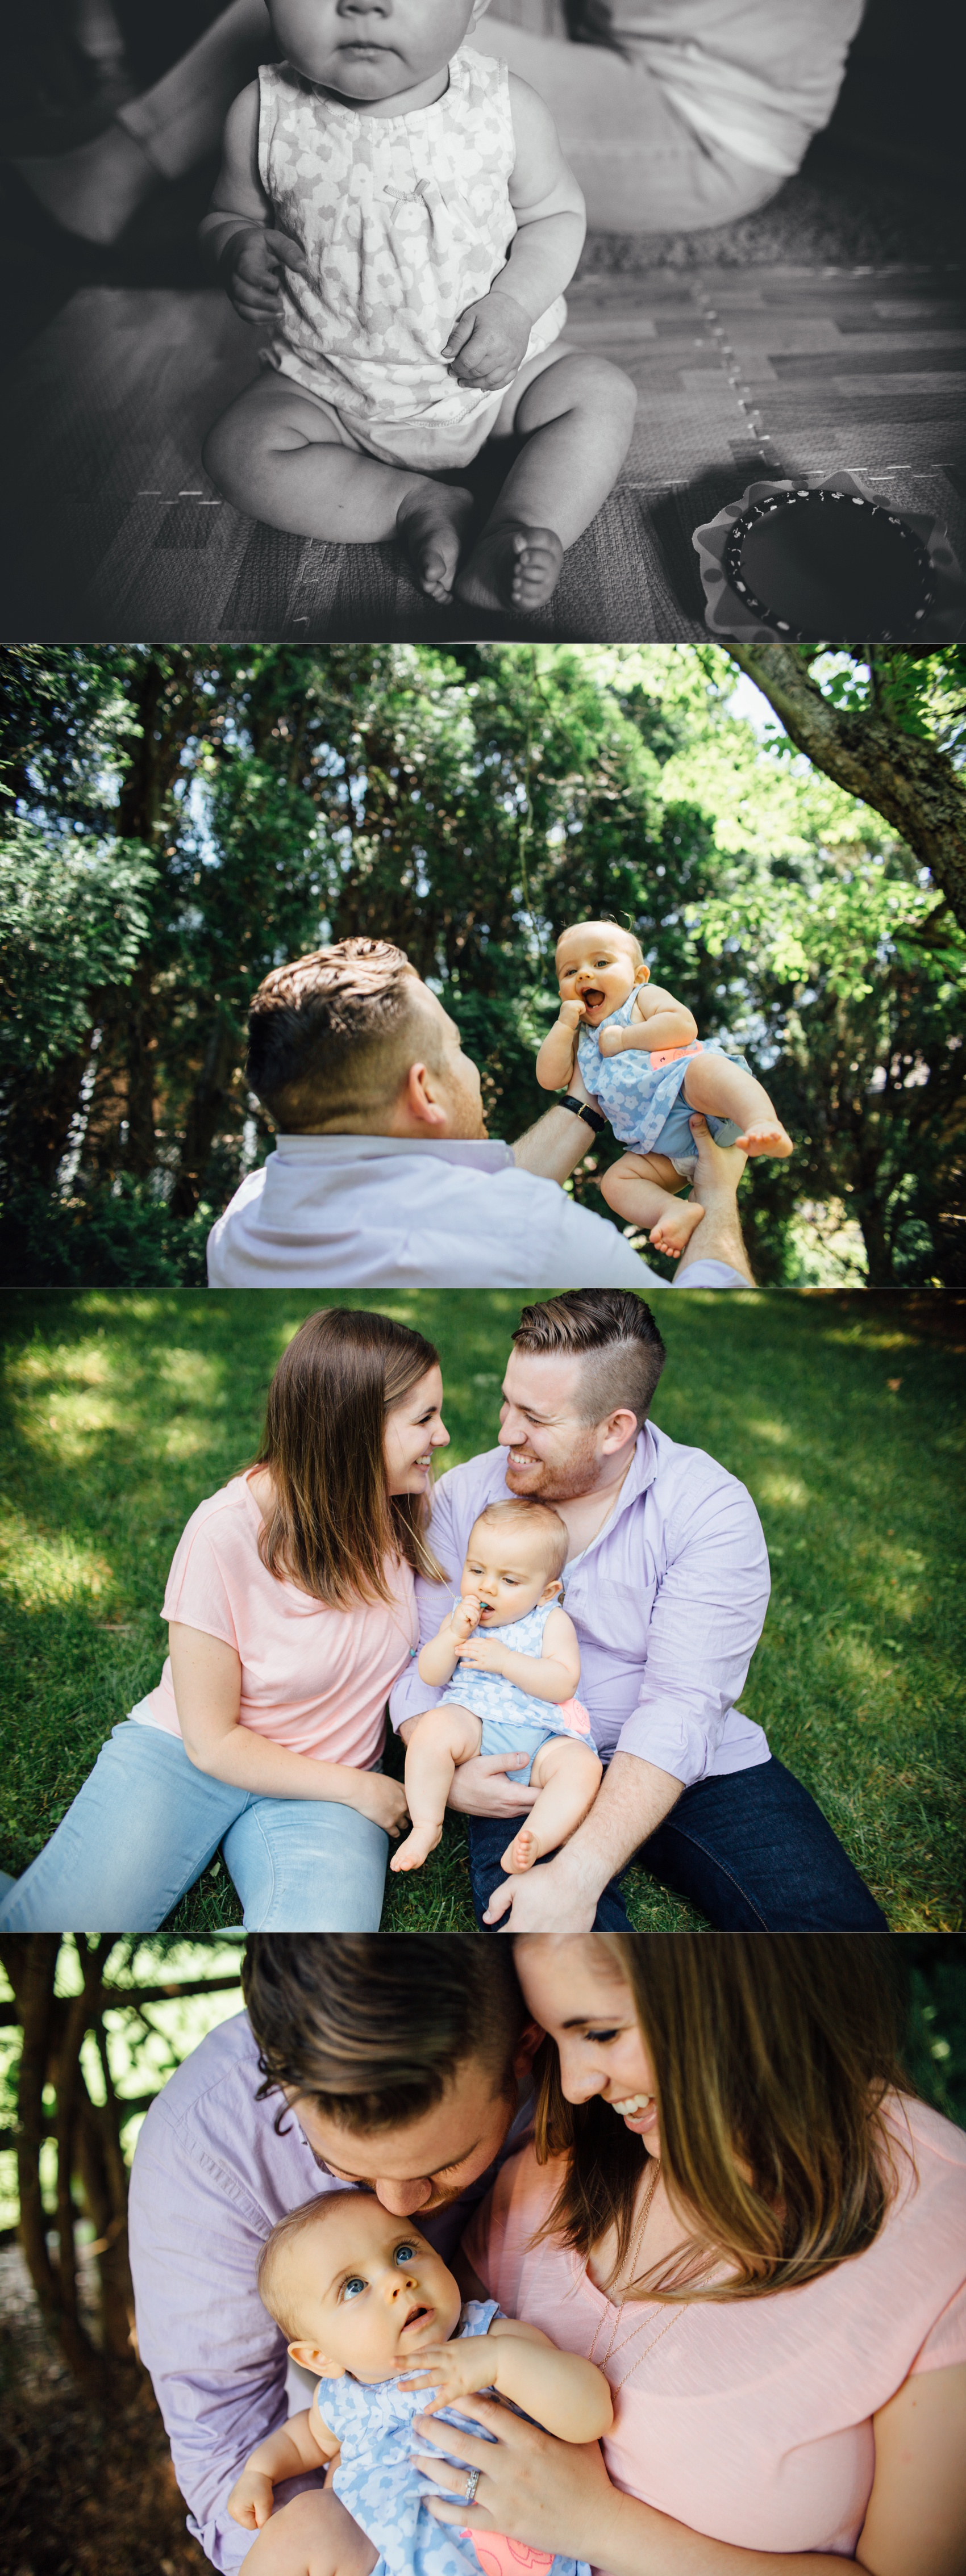 jake-and-katie-tampa-bay-family-portraits-14